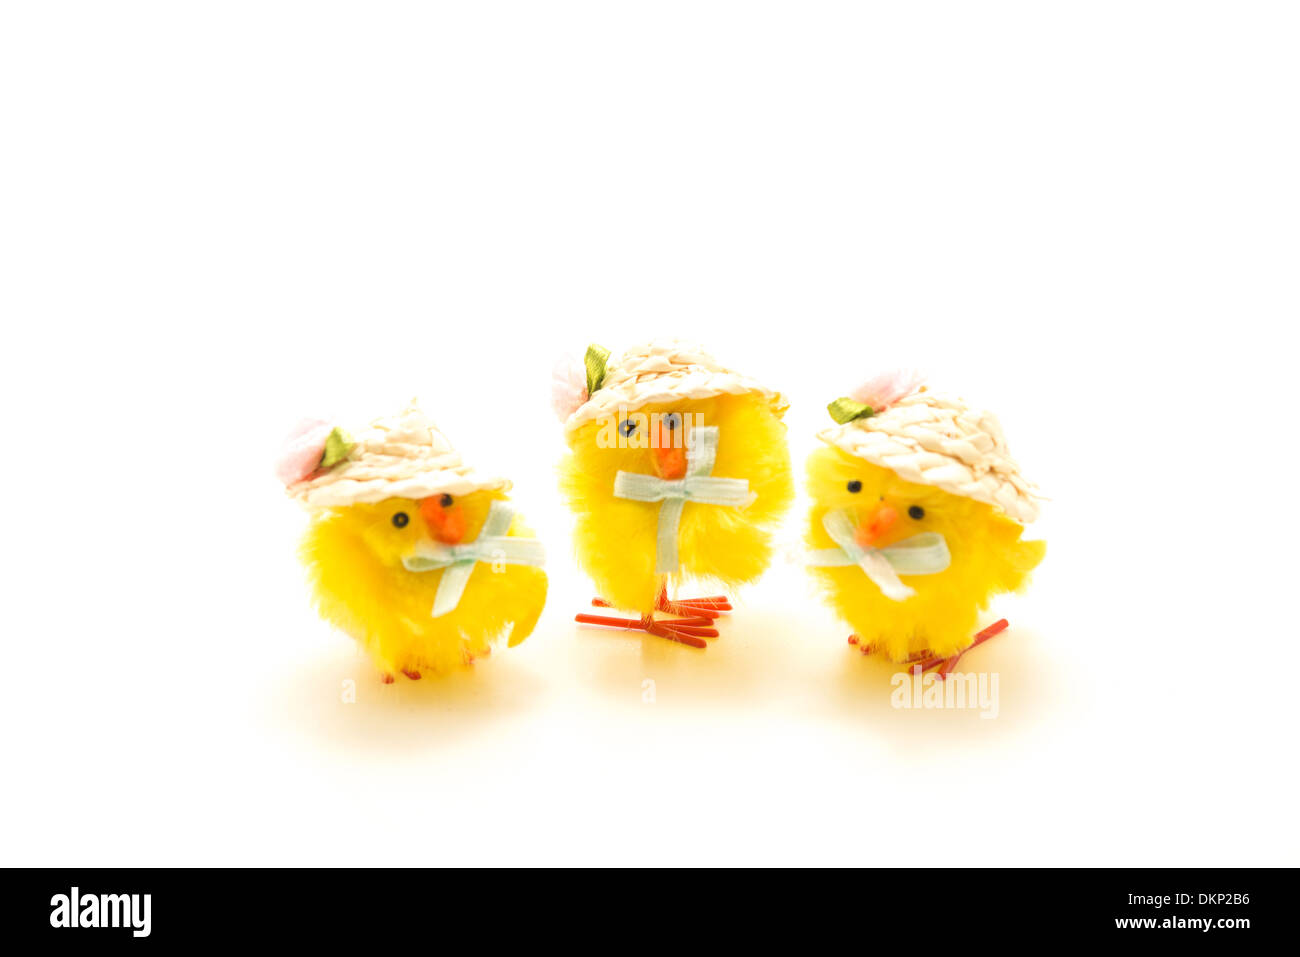 Three little Easter Chick Toys standing in a row - Stock Image